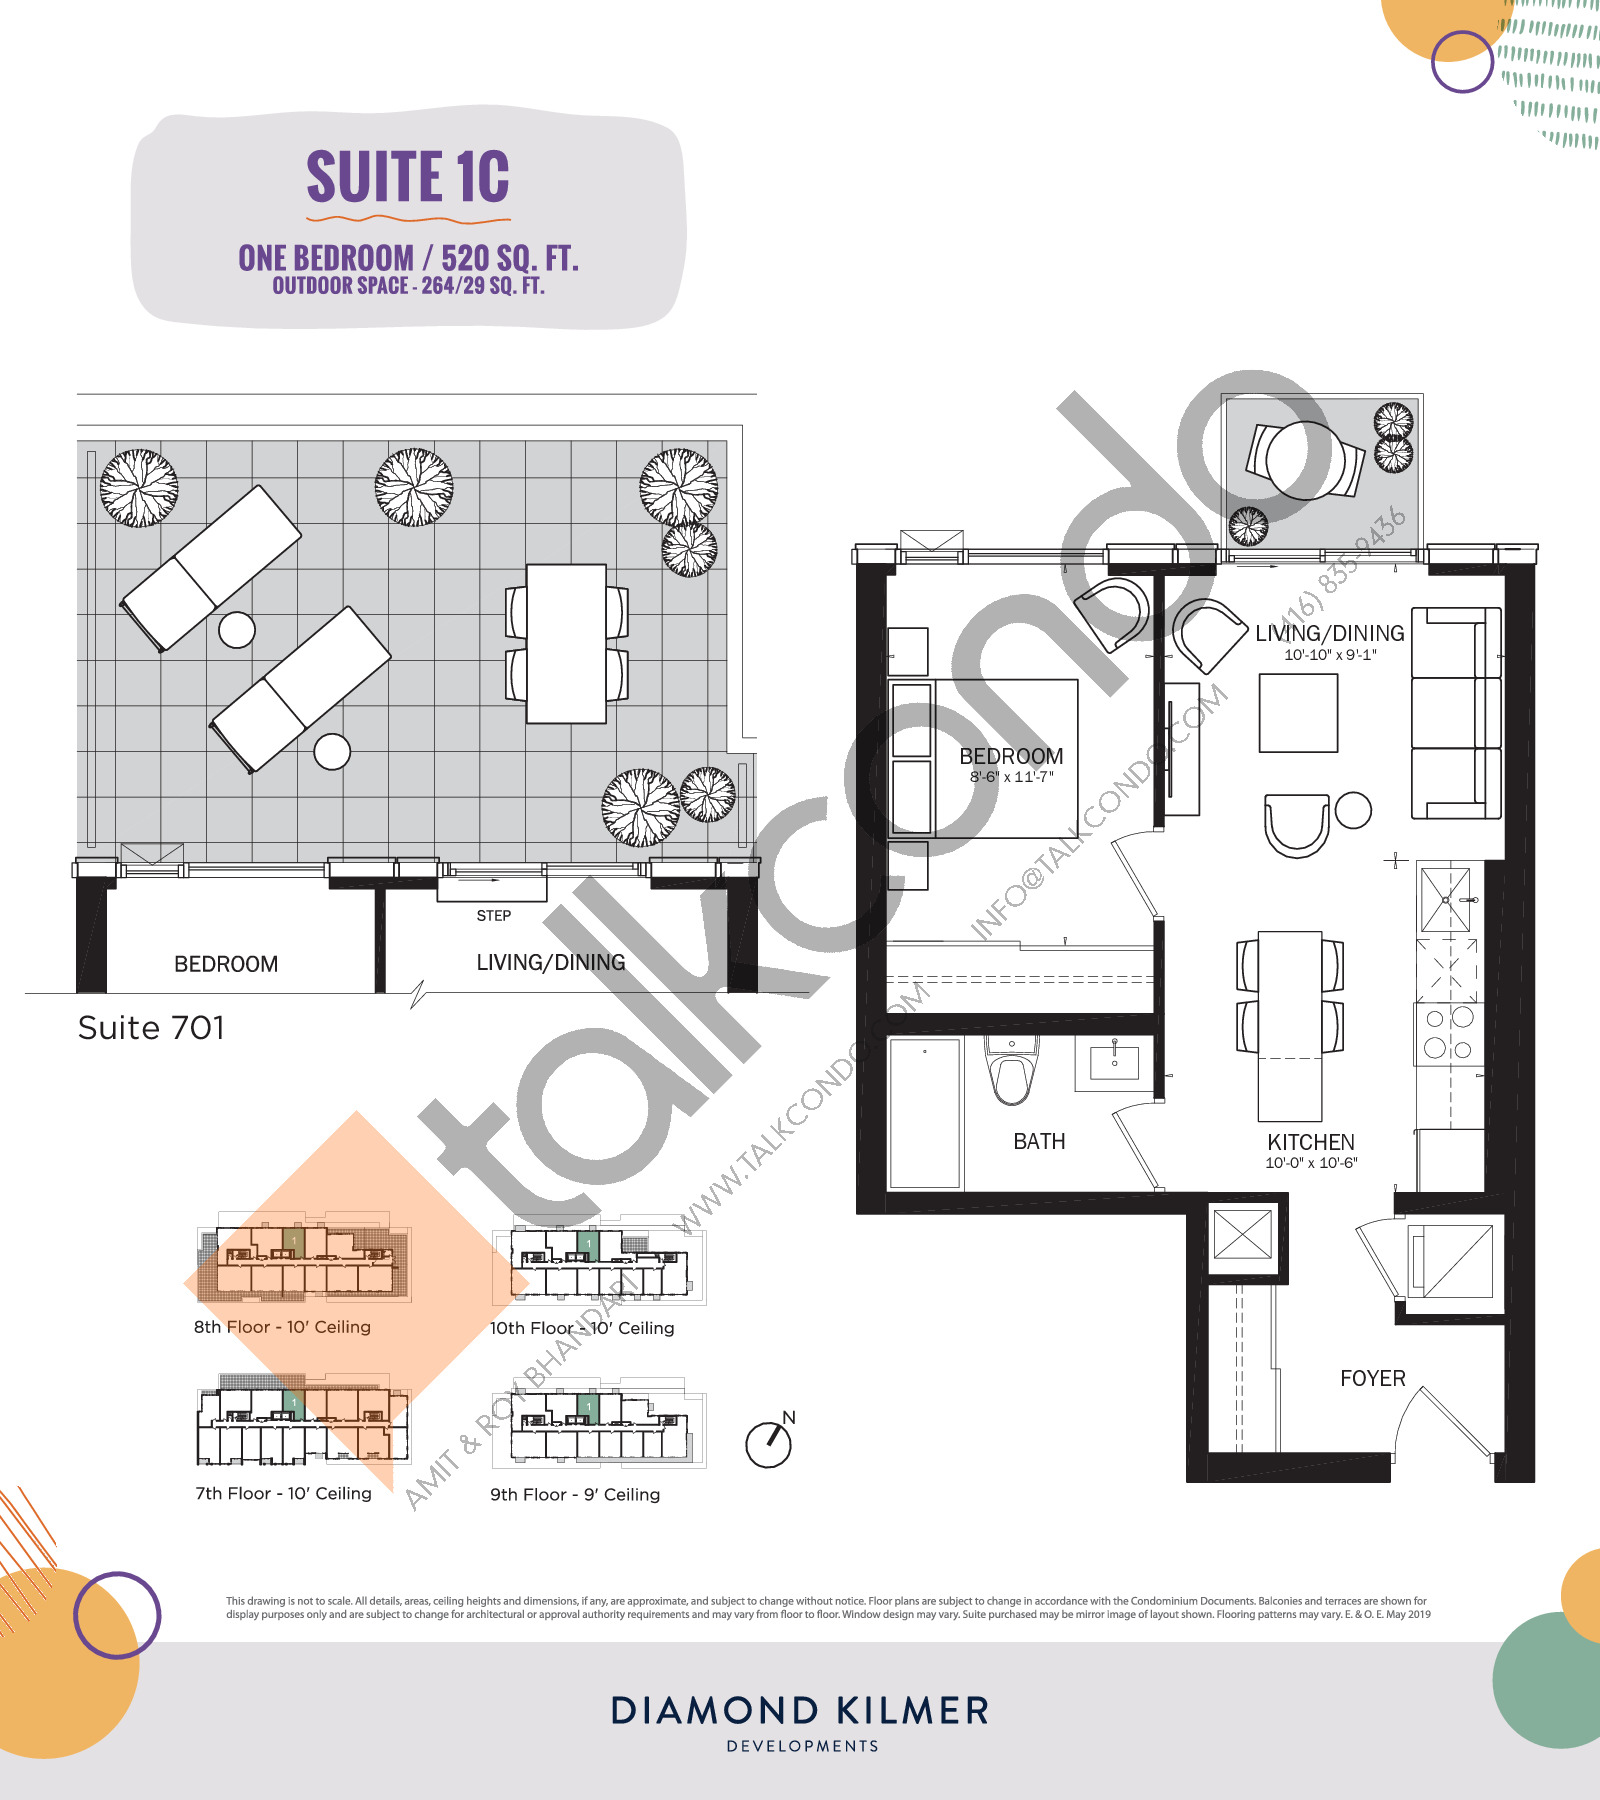 1C Floor Plan at Reunion Crossing Condos & Urban Towns - 520 sq.ft